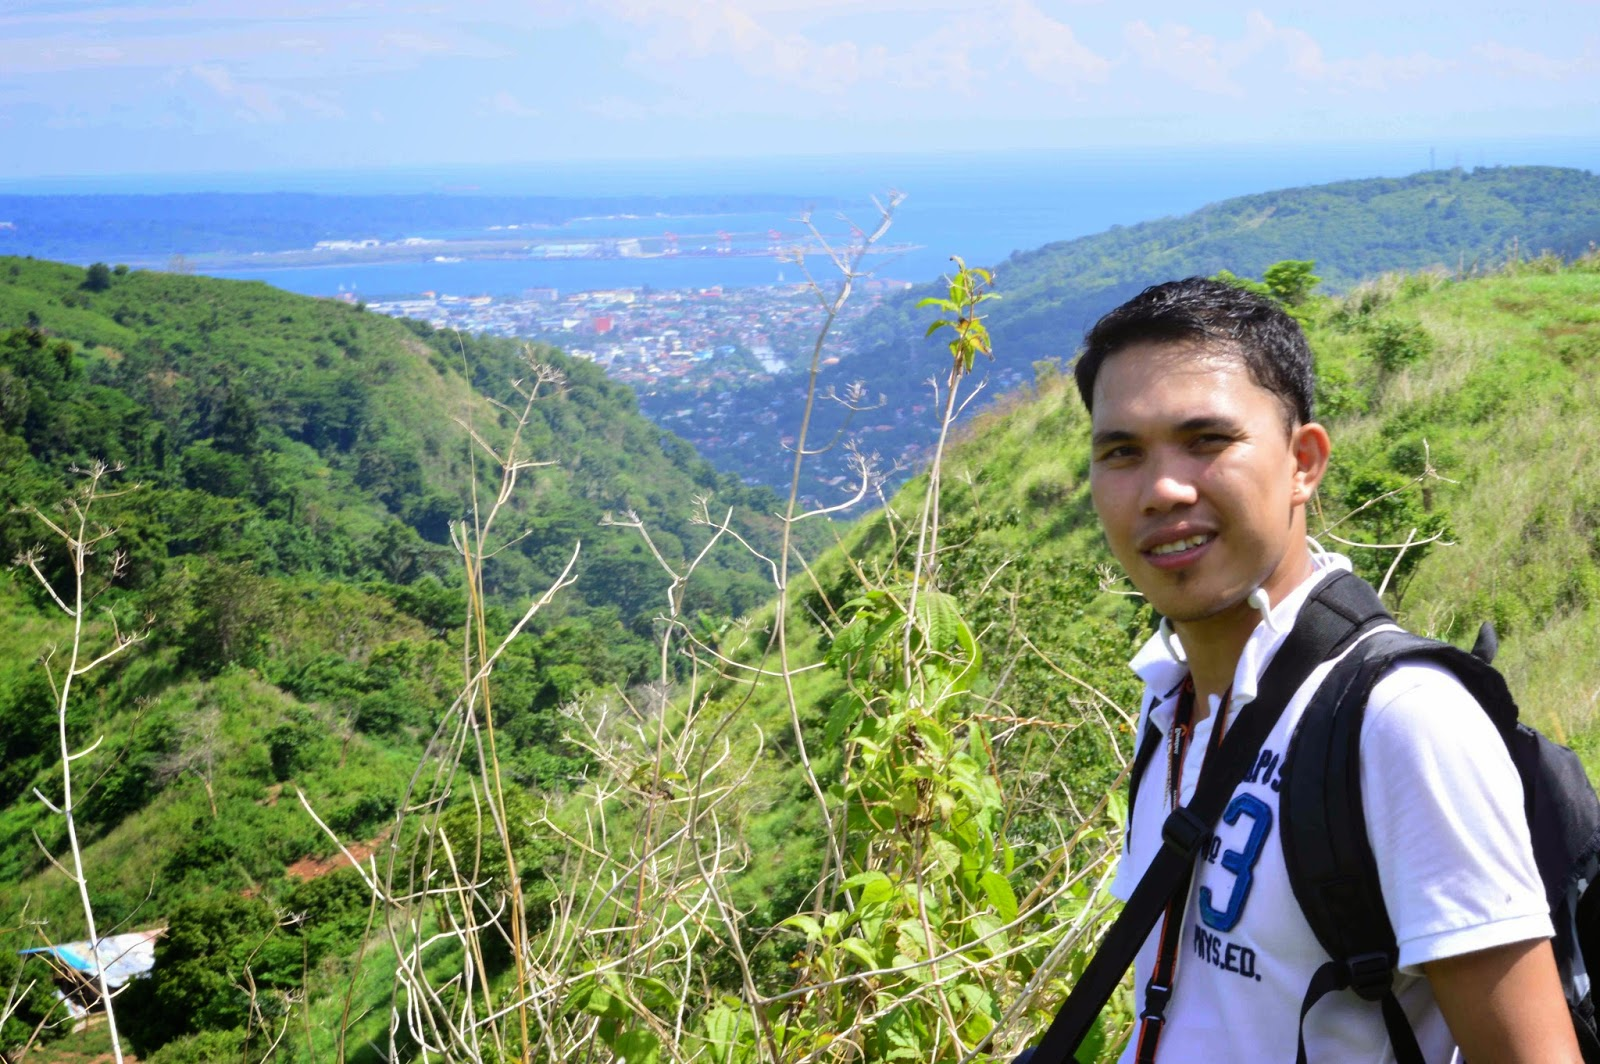 Subic Bay in the background